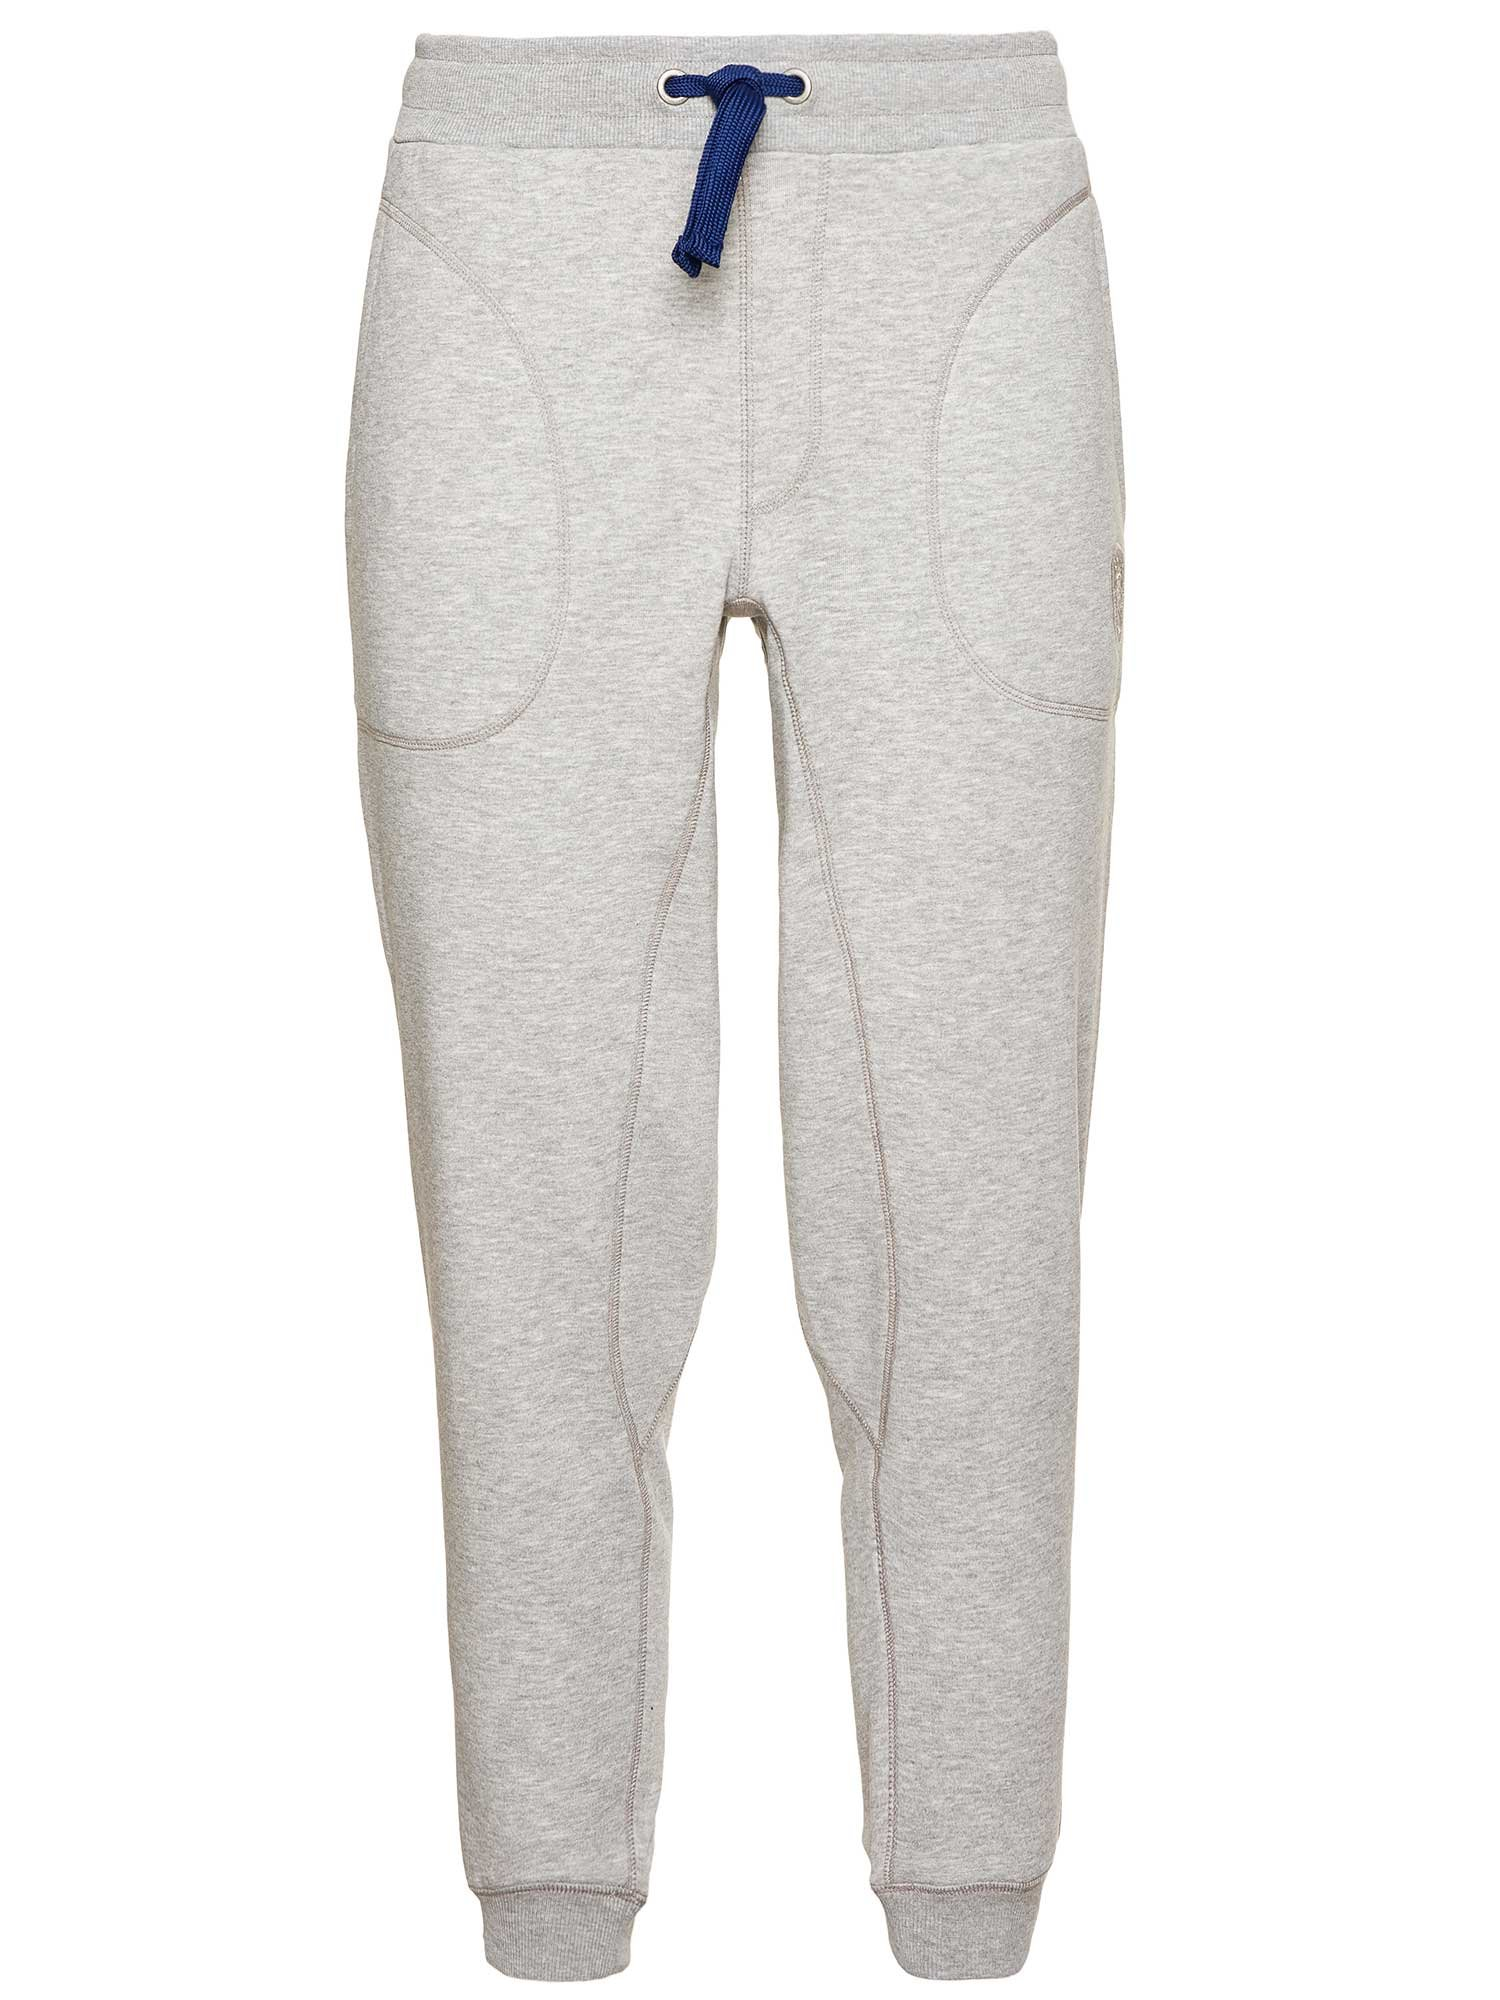 Blauer - PANTALONE LUNGO IN FELPA - Light Grey - Blauer